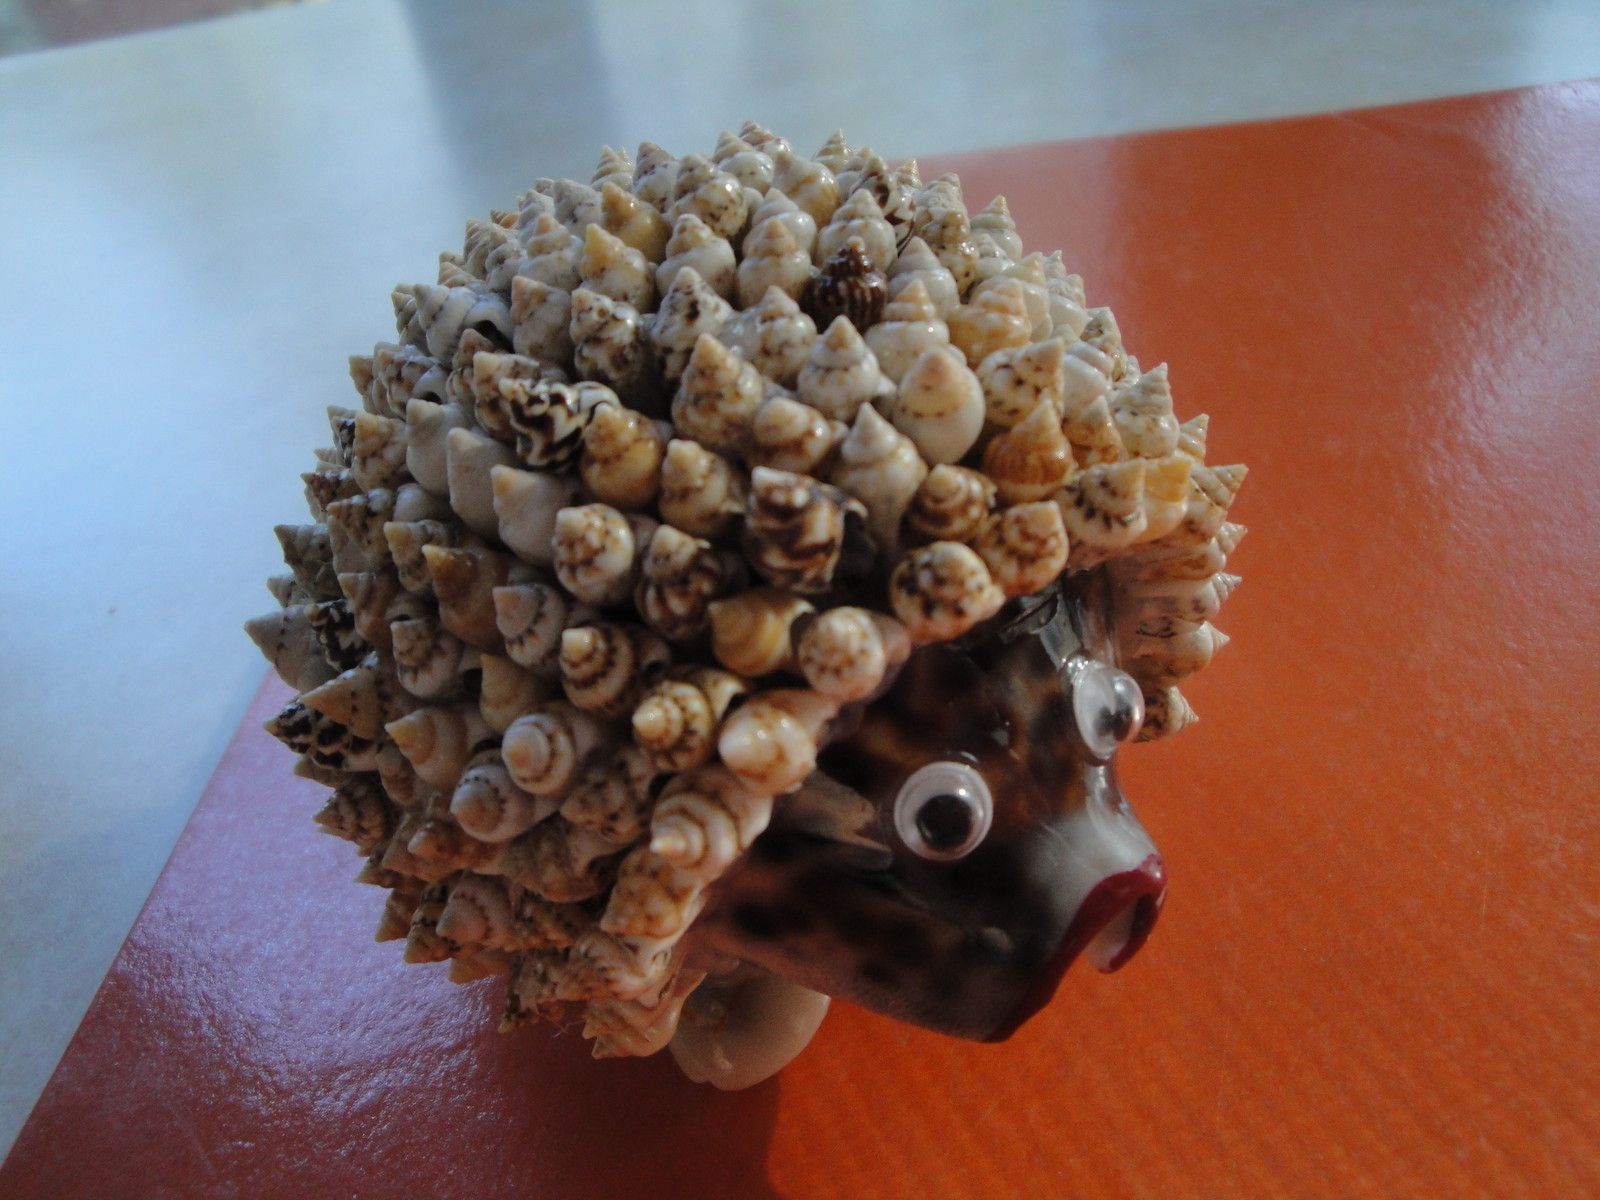 Sea shell seashell hedgehog figurine philippines for Arts and crafts with seashells